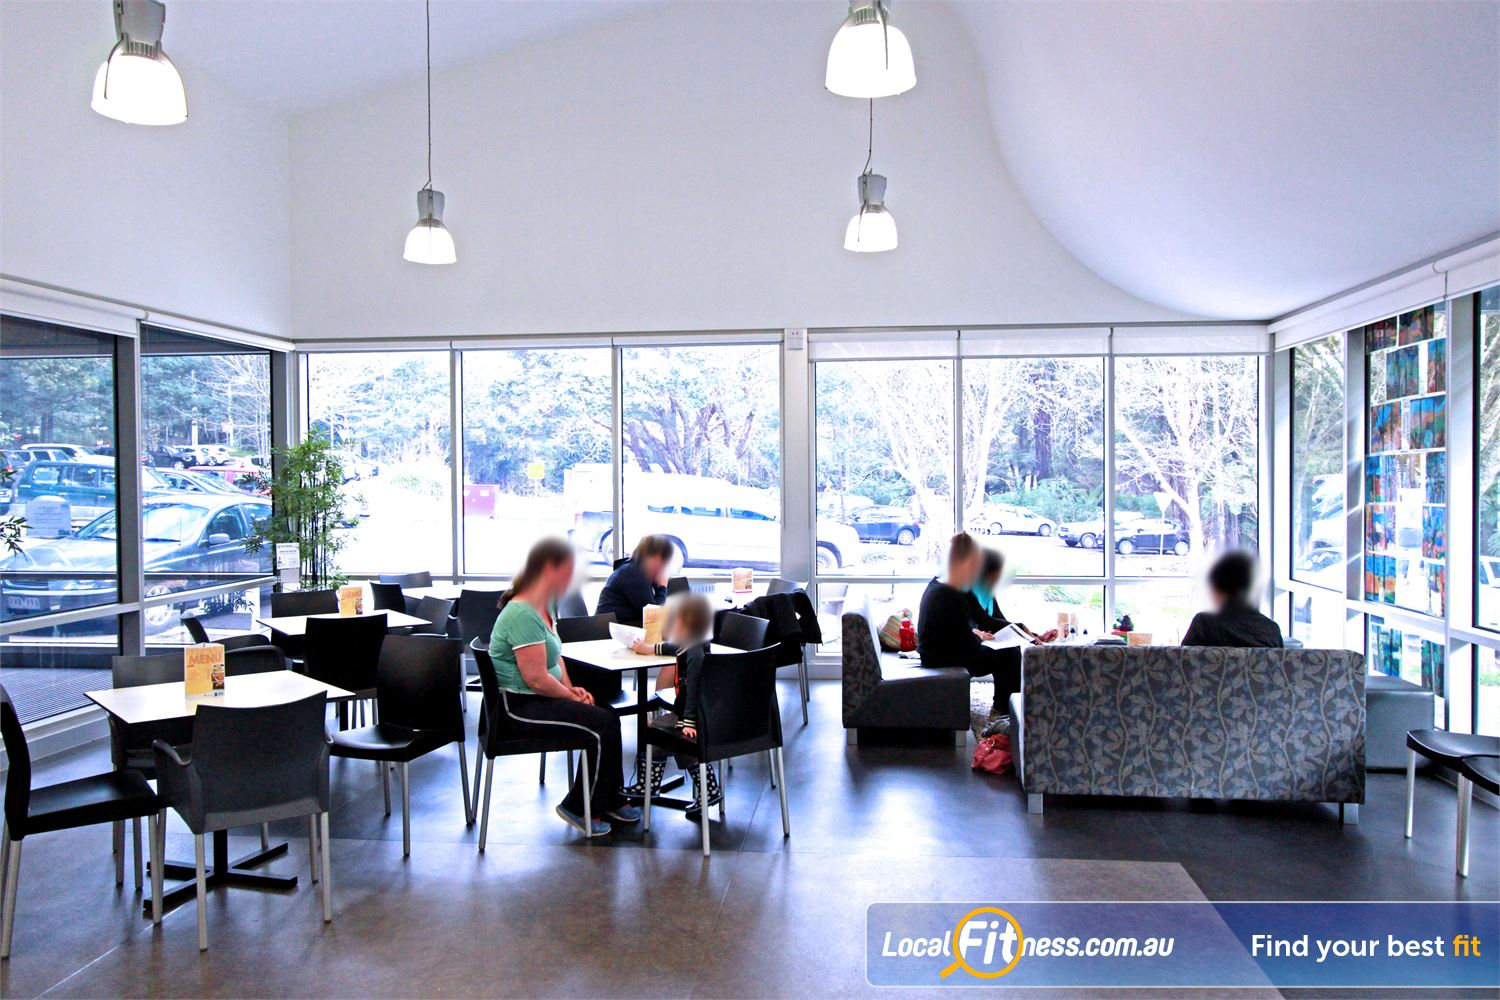 Monbulk Aquatic Centre Monbulk Have an aromatic coffee and relax in our cafe seating area.